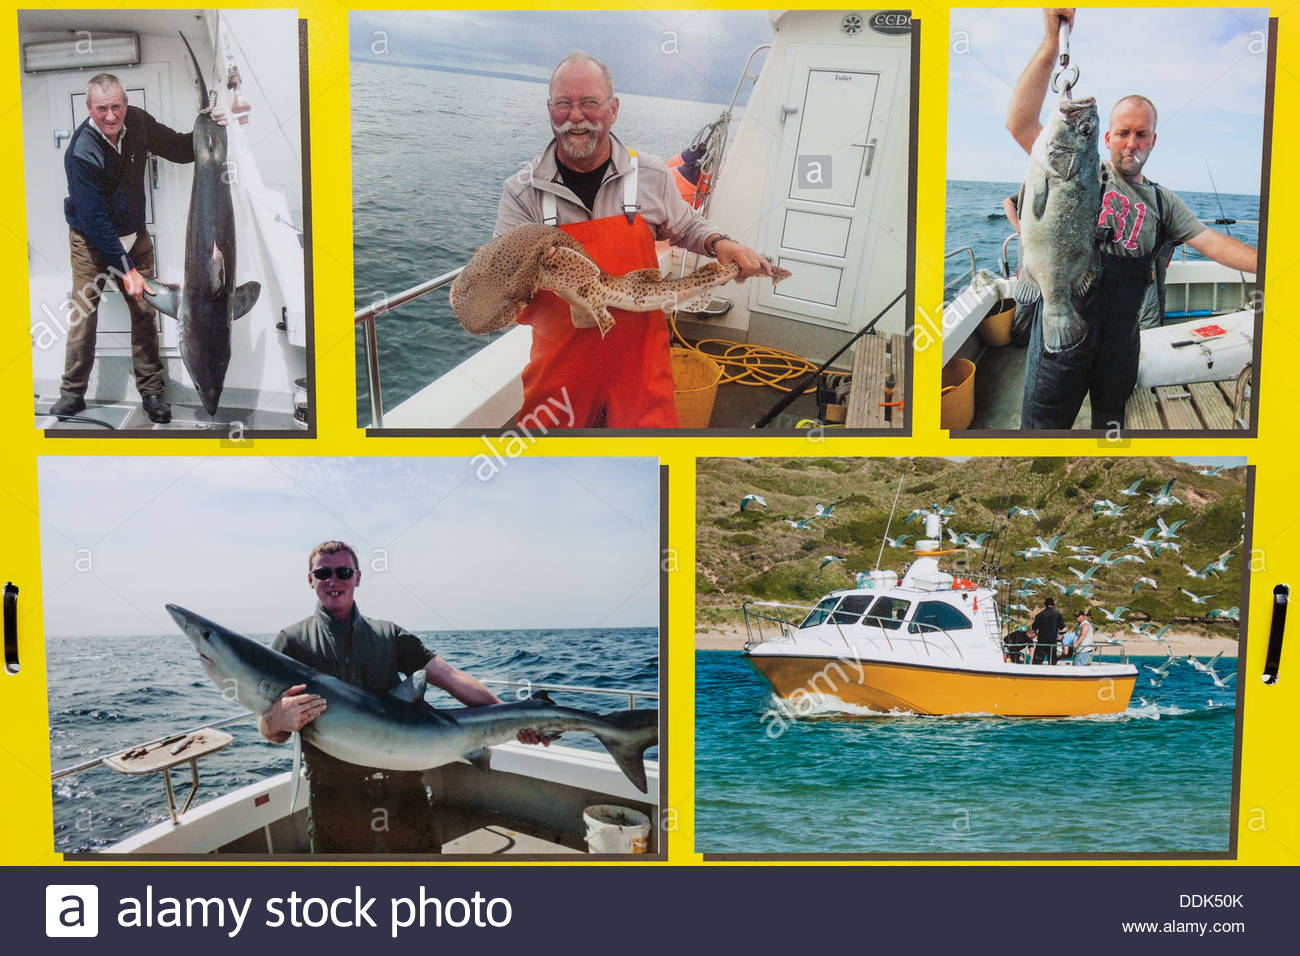 England, Cornwall, Padstow, Poster Advertising Fishing Trips - Stock Image